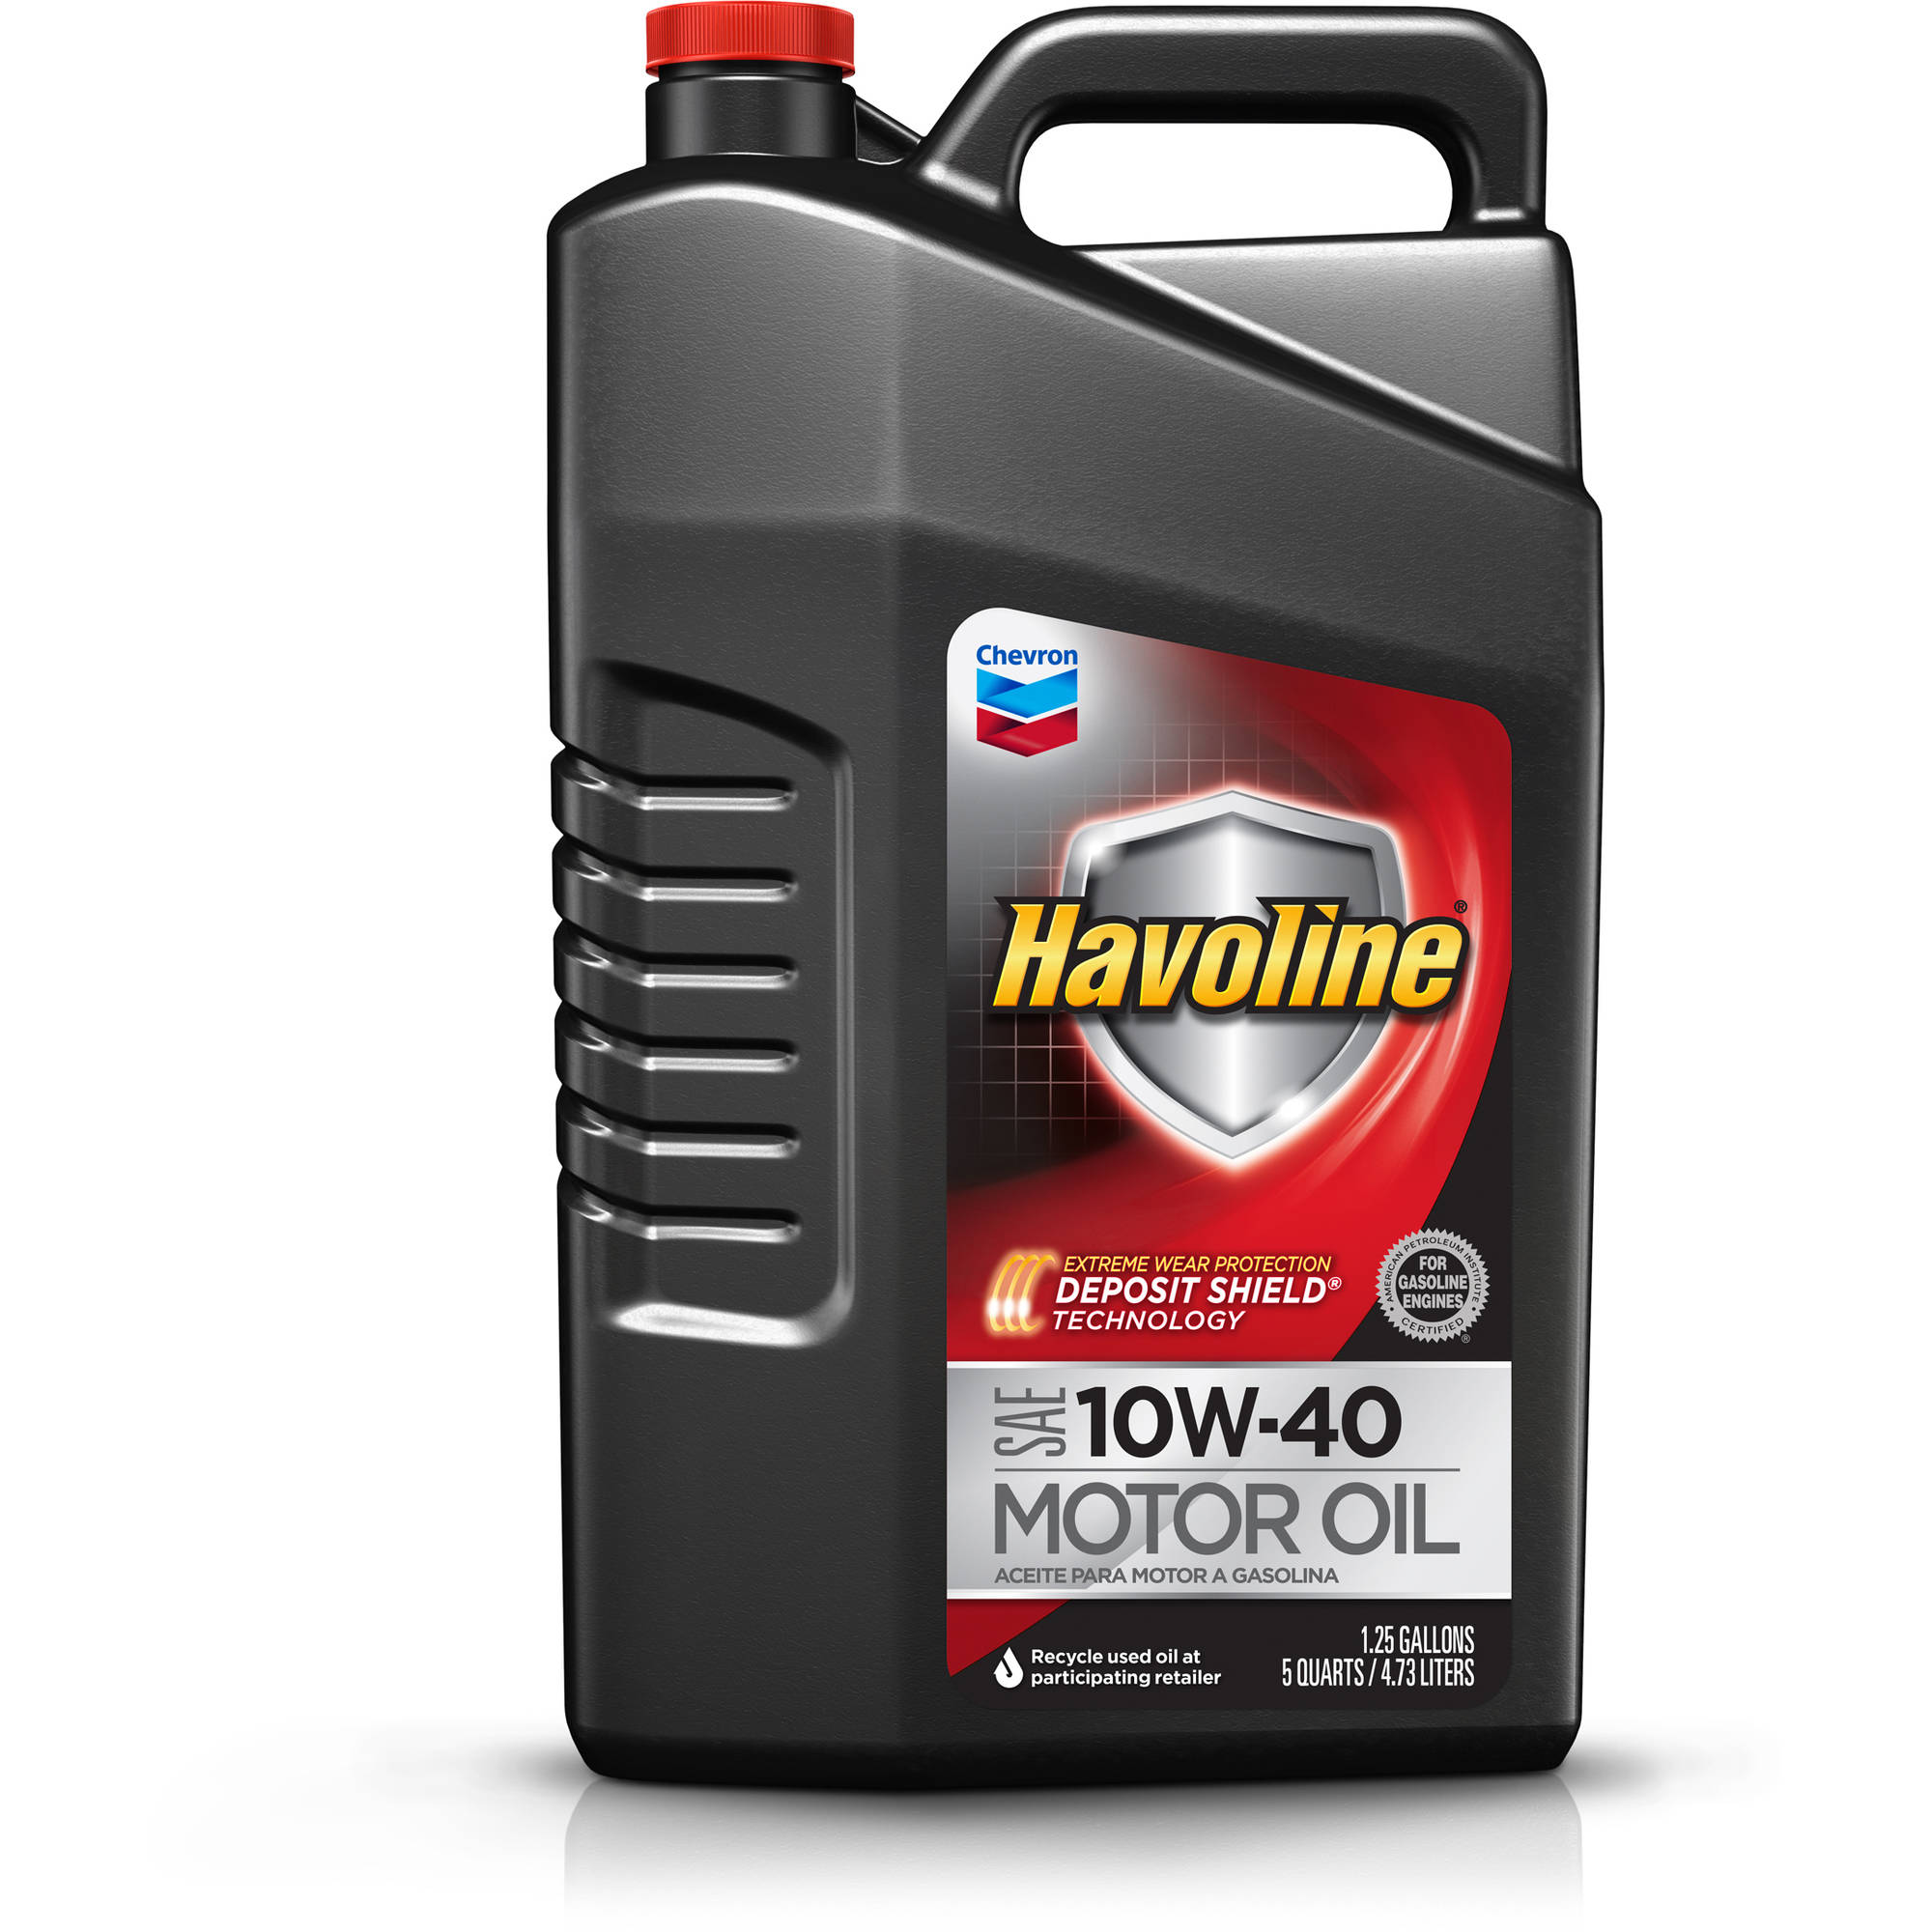 Havoline with Deposit Shield 10W40 Motor Oil, 5 qt